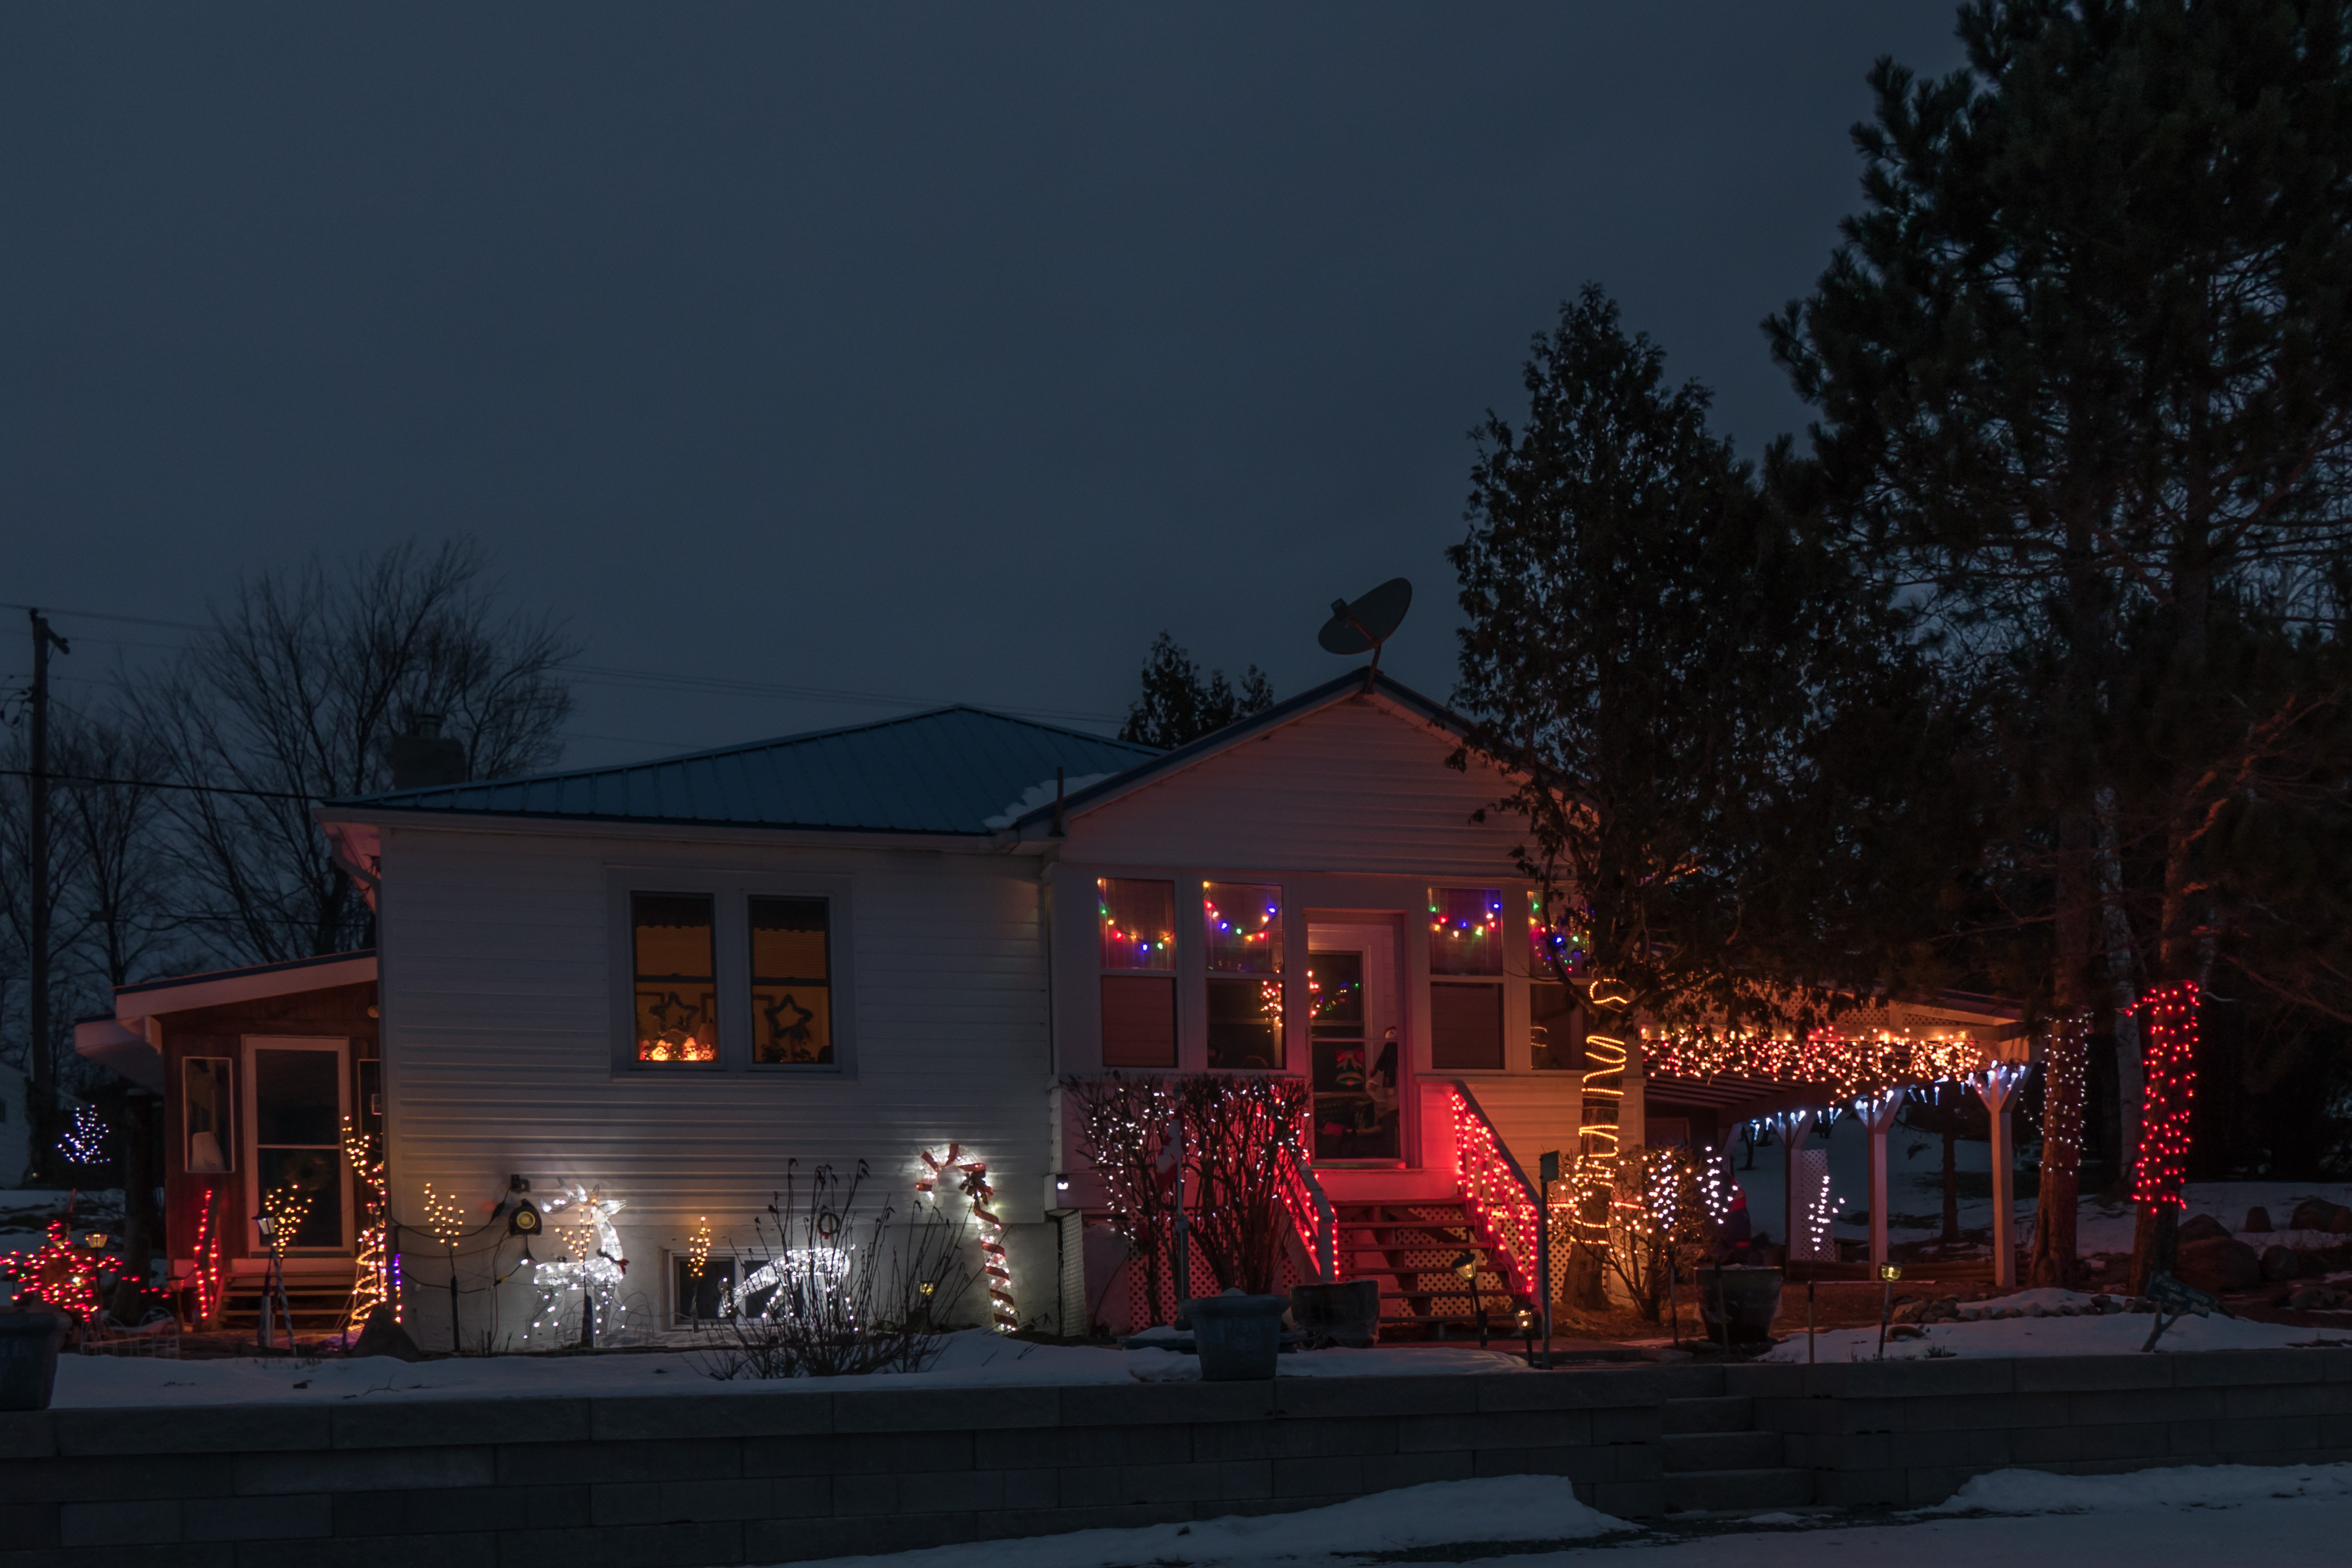 20161229 christmas lights and a trip to port loring brtthomes blog